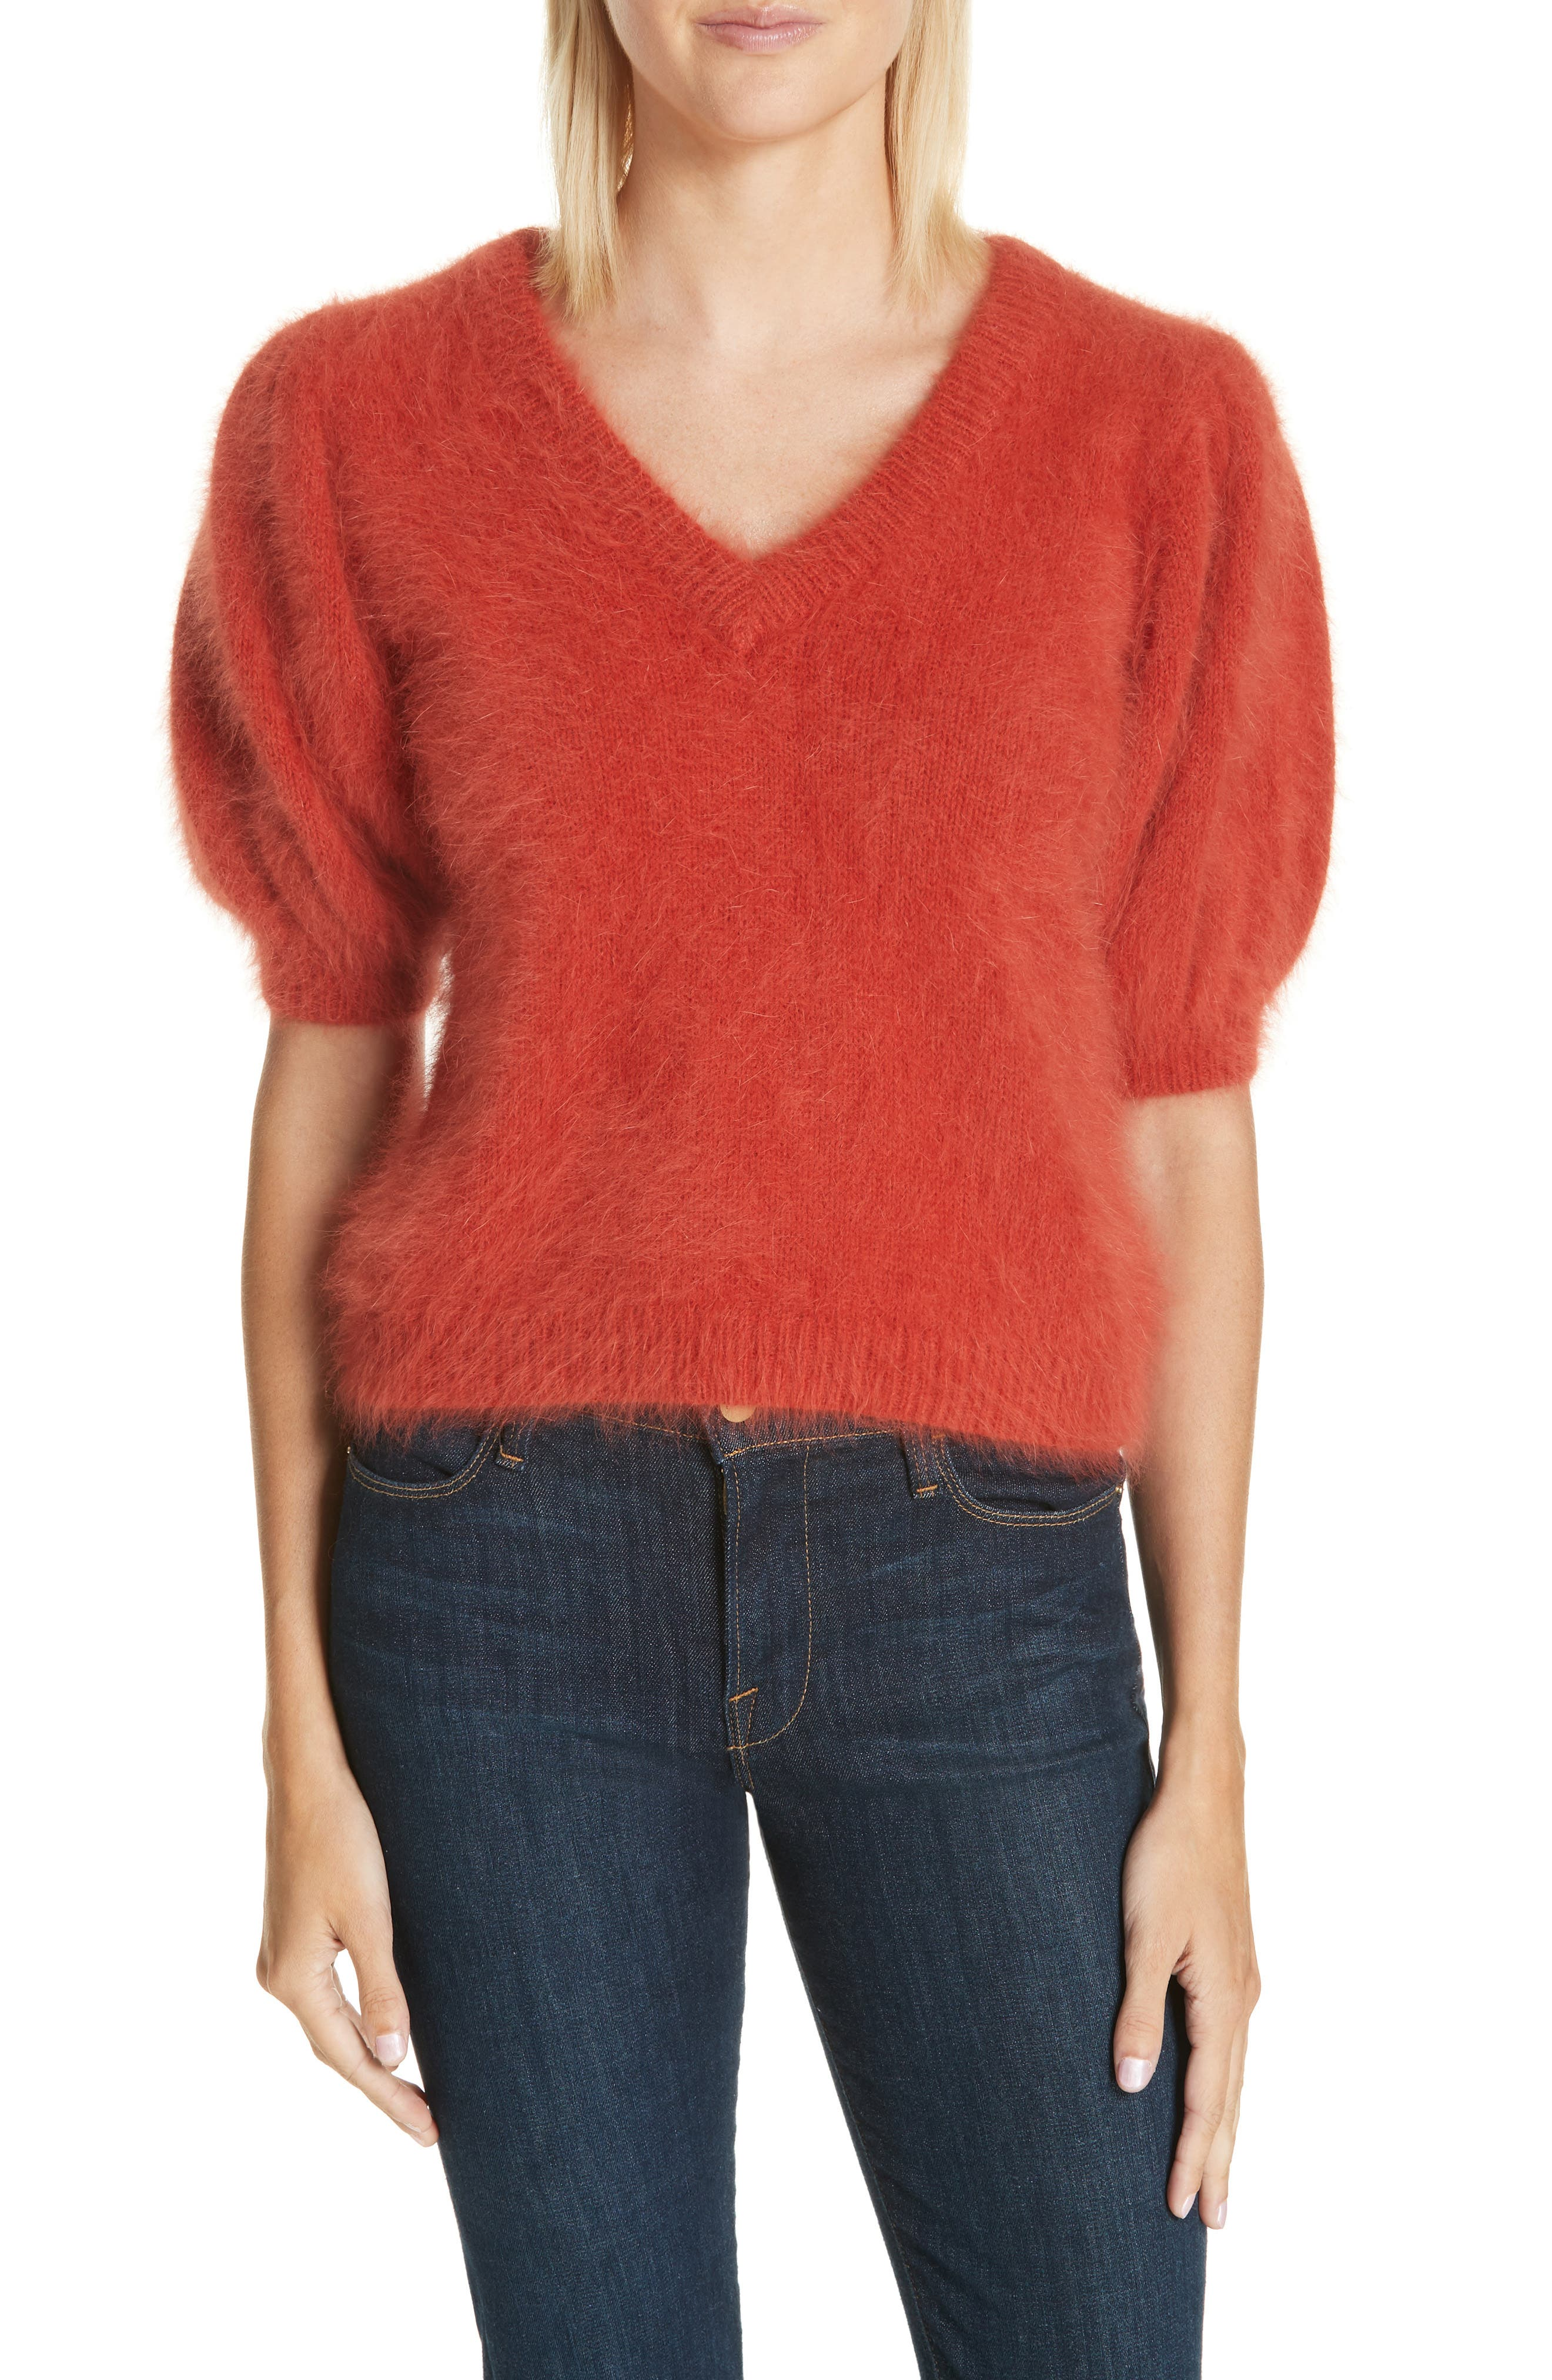 Aries Puff Sleeve Sweater,                         Main,                         color, CRIMSON